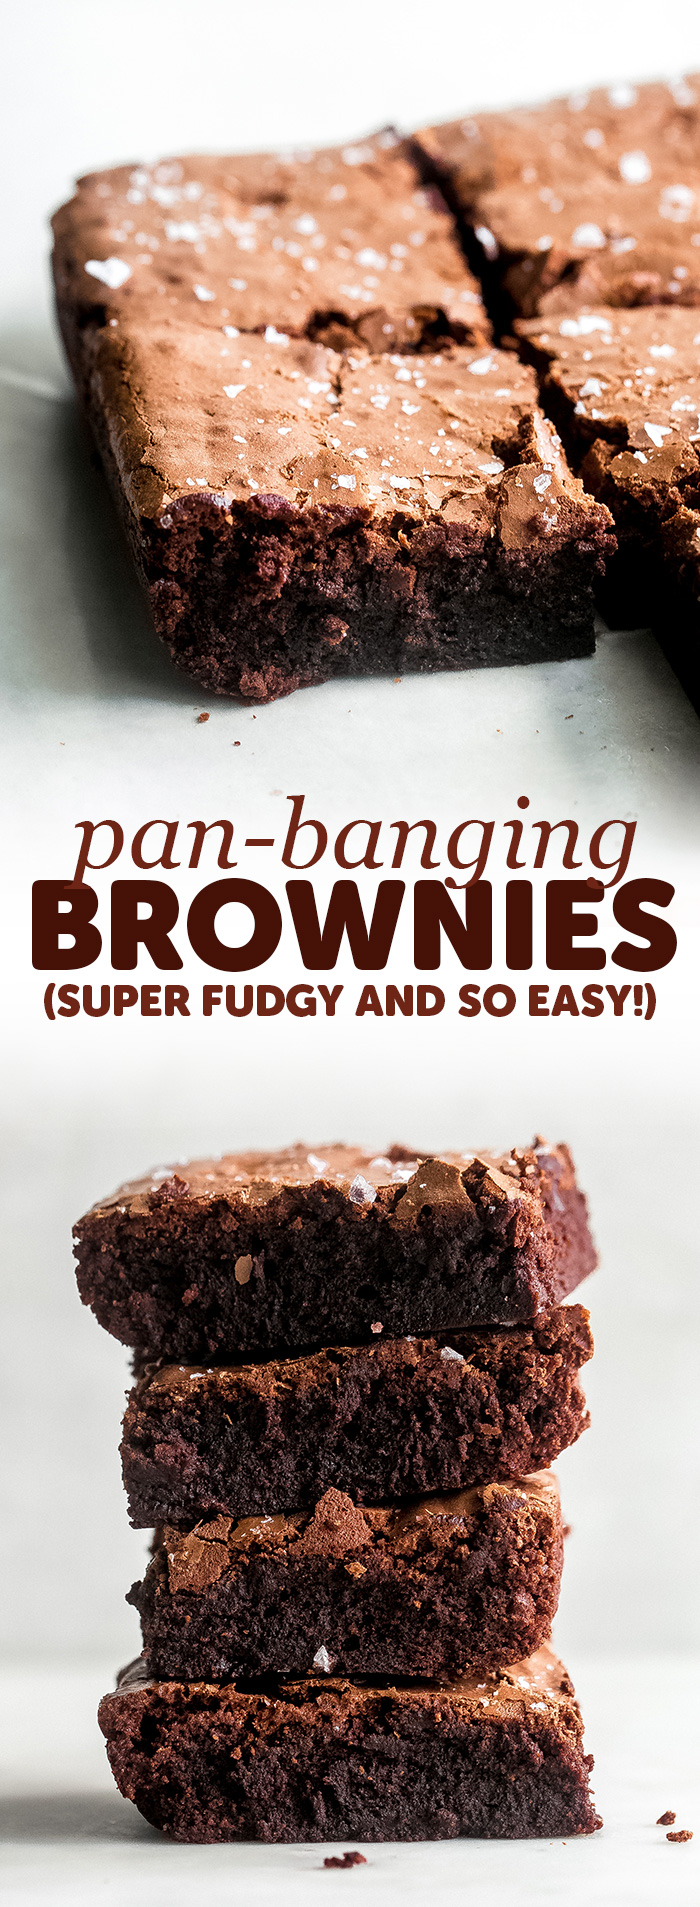 Pan-Banging Salted Fudge Brownies - These brownies are the most delicious intense fudge brownies ever! They contain no leavening agents and create the best better-than-box-mix, from-scratch brownies! #brownies #fudgebrownies #bestbrownies #browniesrecipe #bestfudgebrownies | Littlespicejar.com